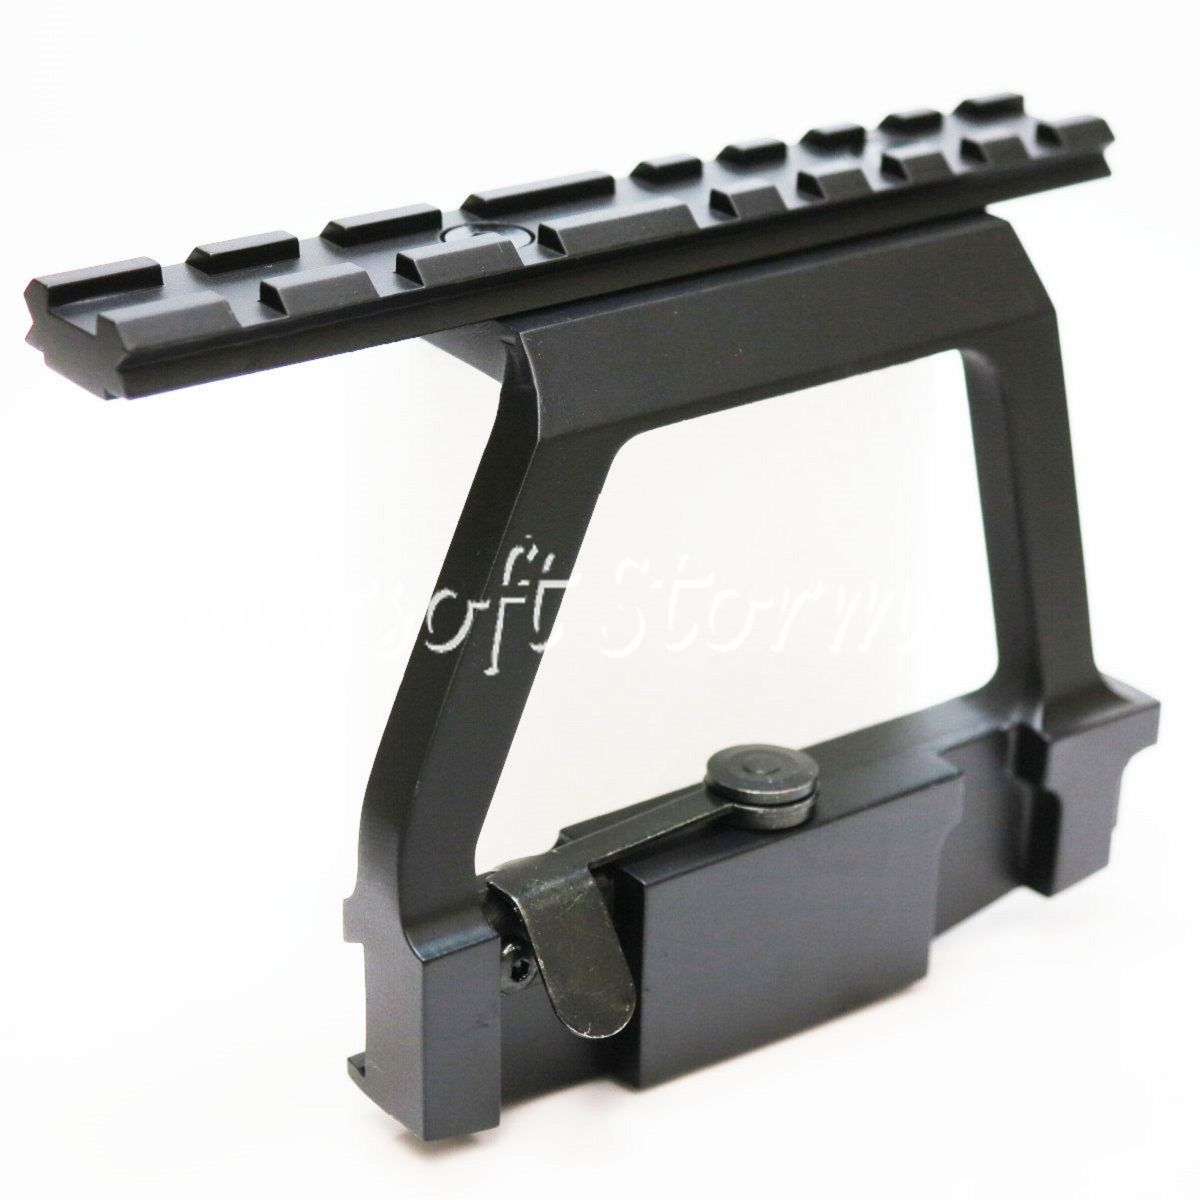 Tactical Shooting Gear CYMA AK Side Rail Heavy Duty Scope Mount Base